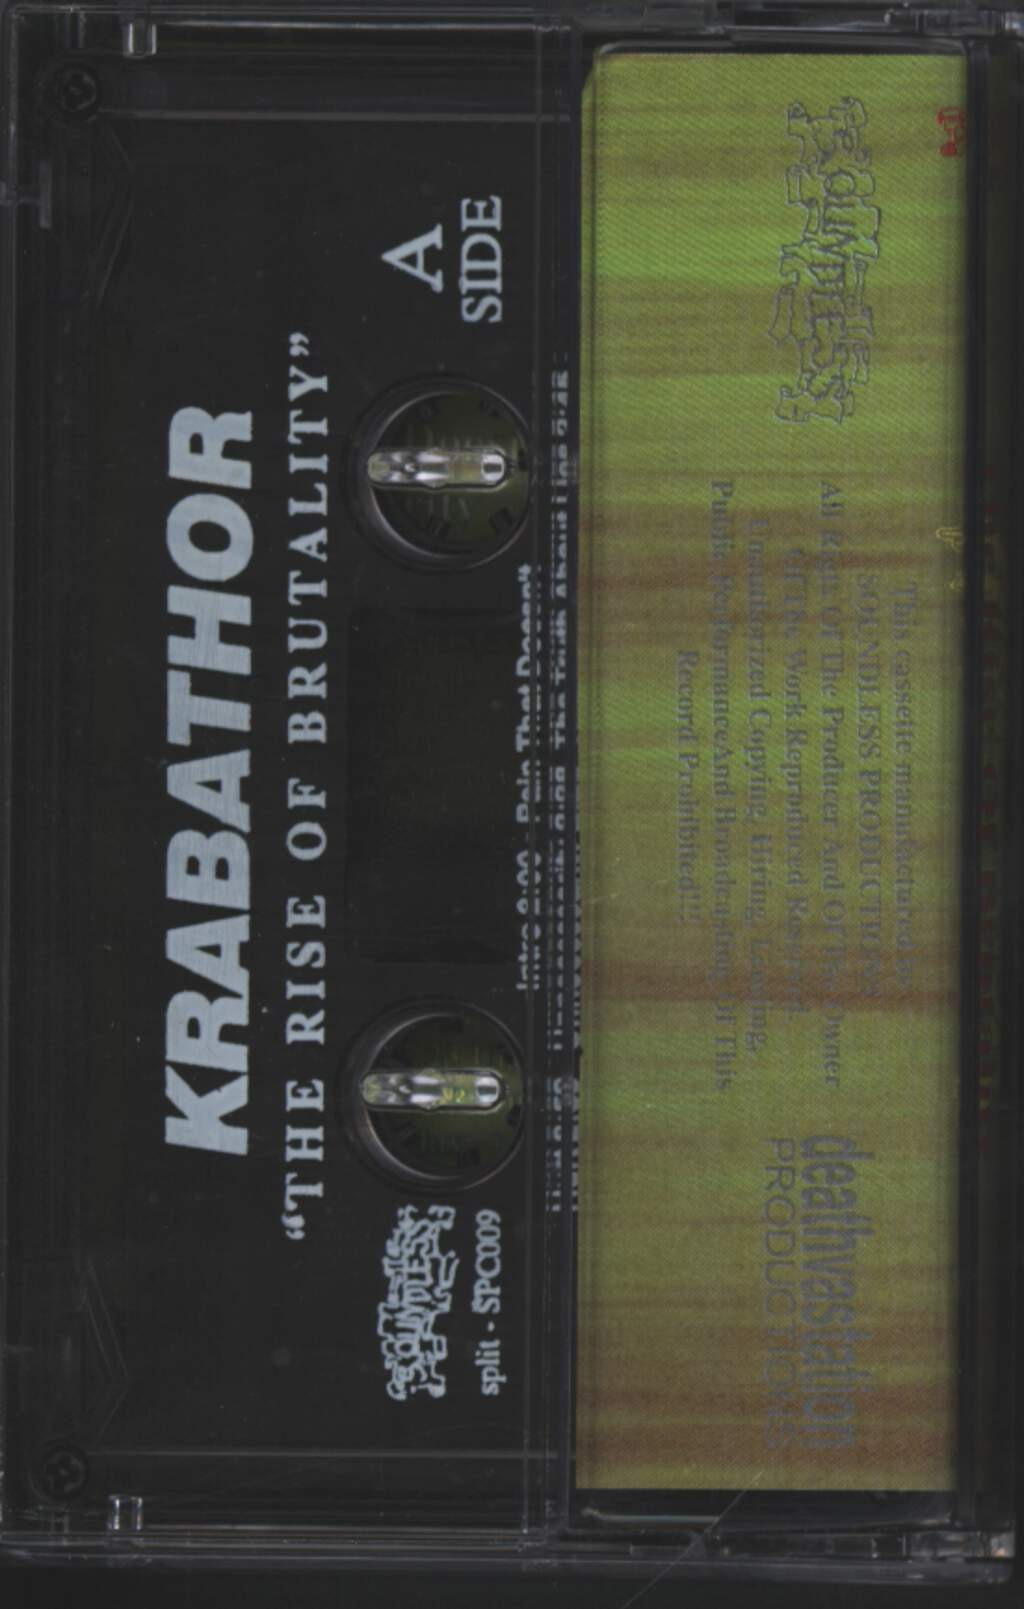 Krabathor: The Rise Of Brutality / Pain, Compact Cassette